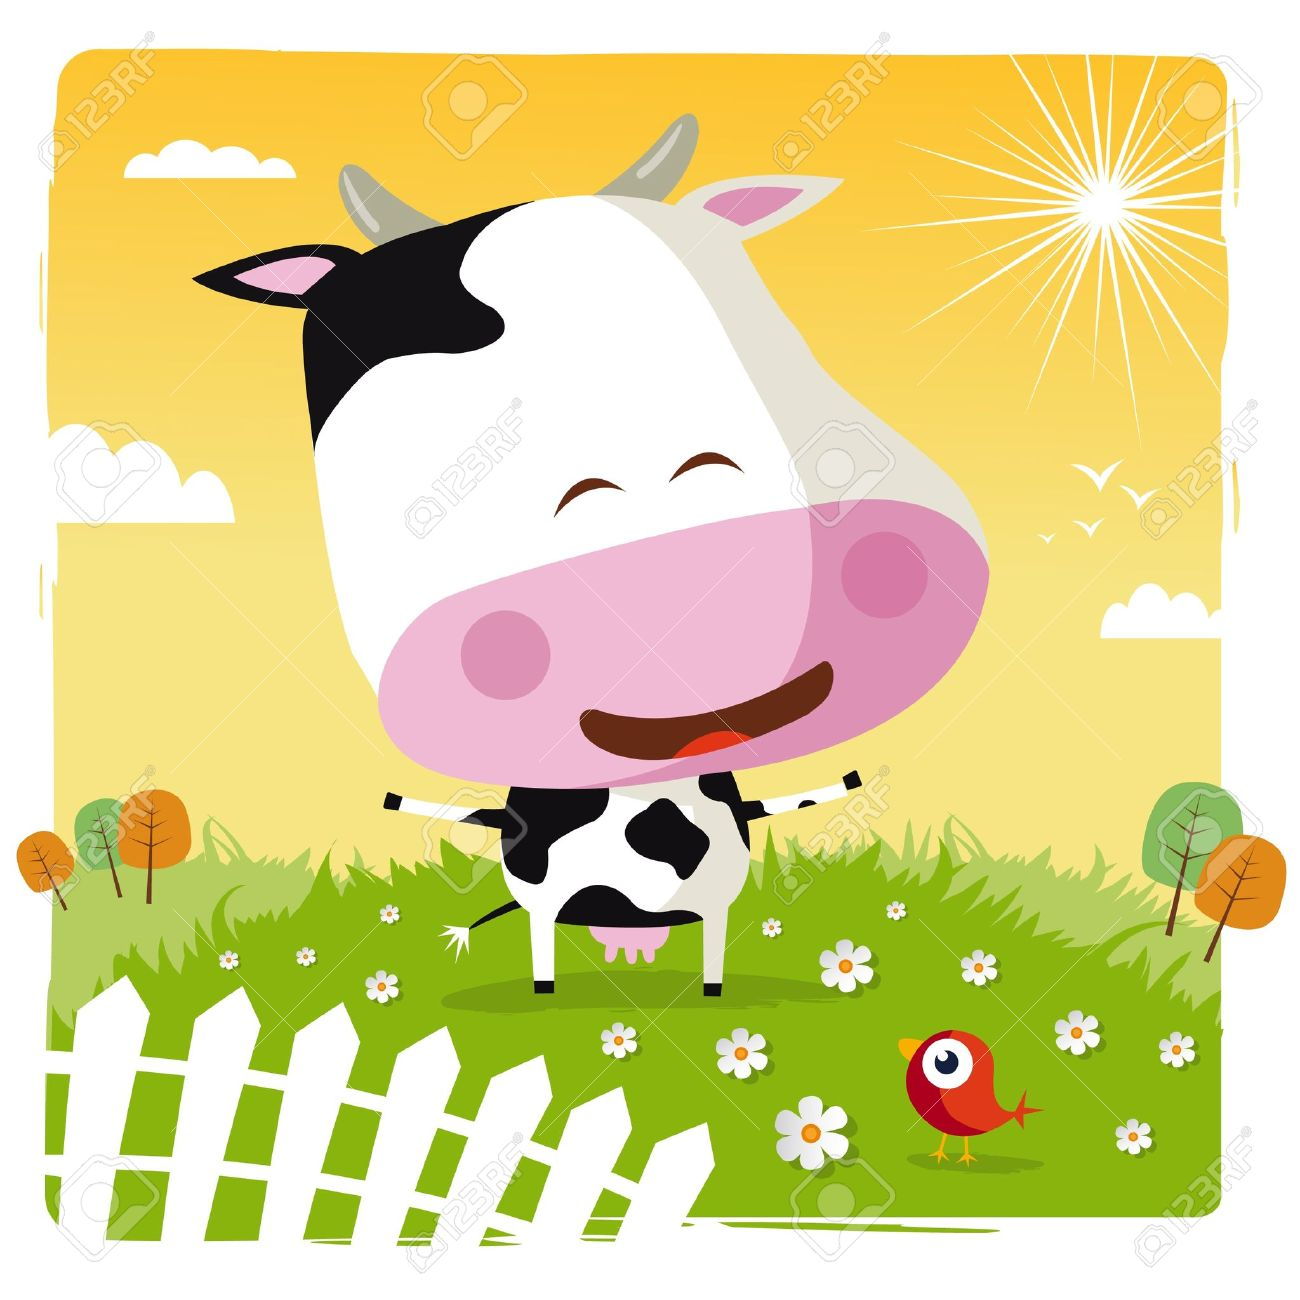 Funny Cow Royalty Free Cliparts, Vectors, And Stock Illustration.